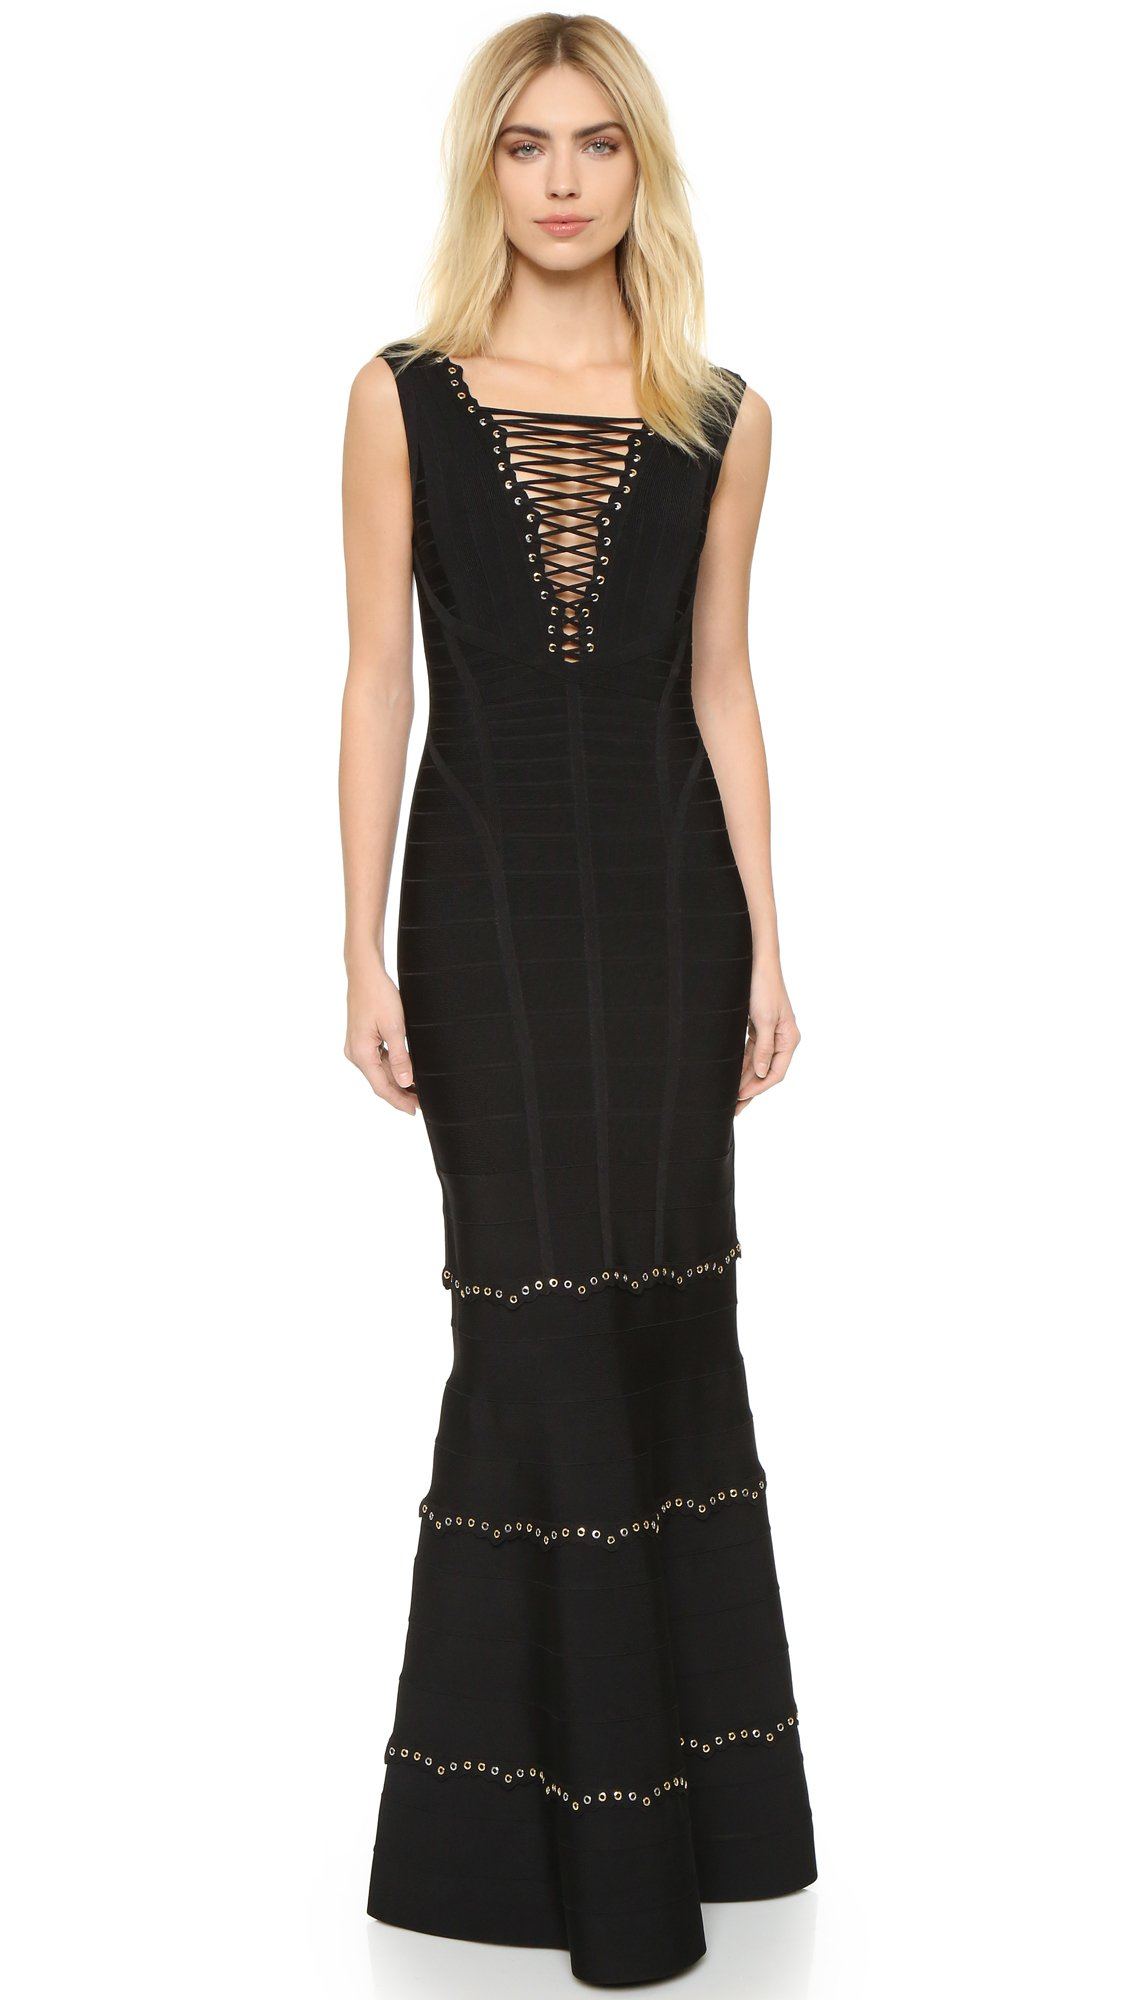 Hervé Léger Sleeveless Gown With Lace Up Detail in Black - Lyst